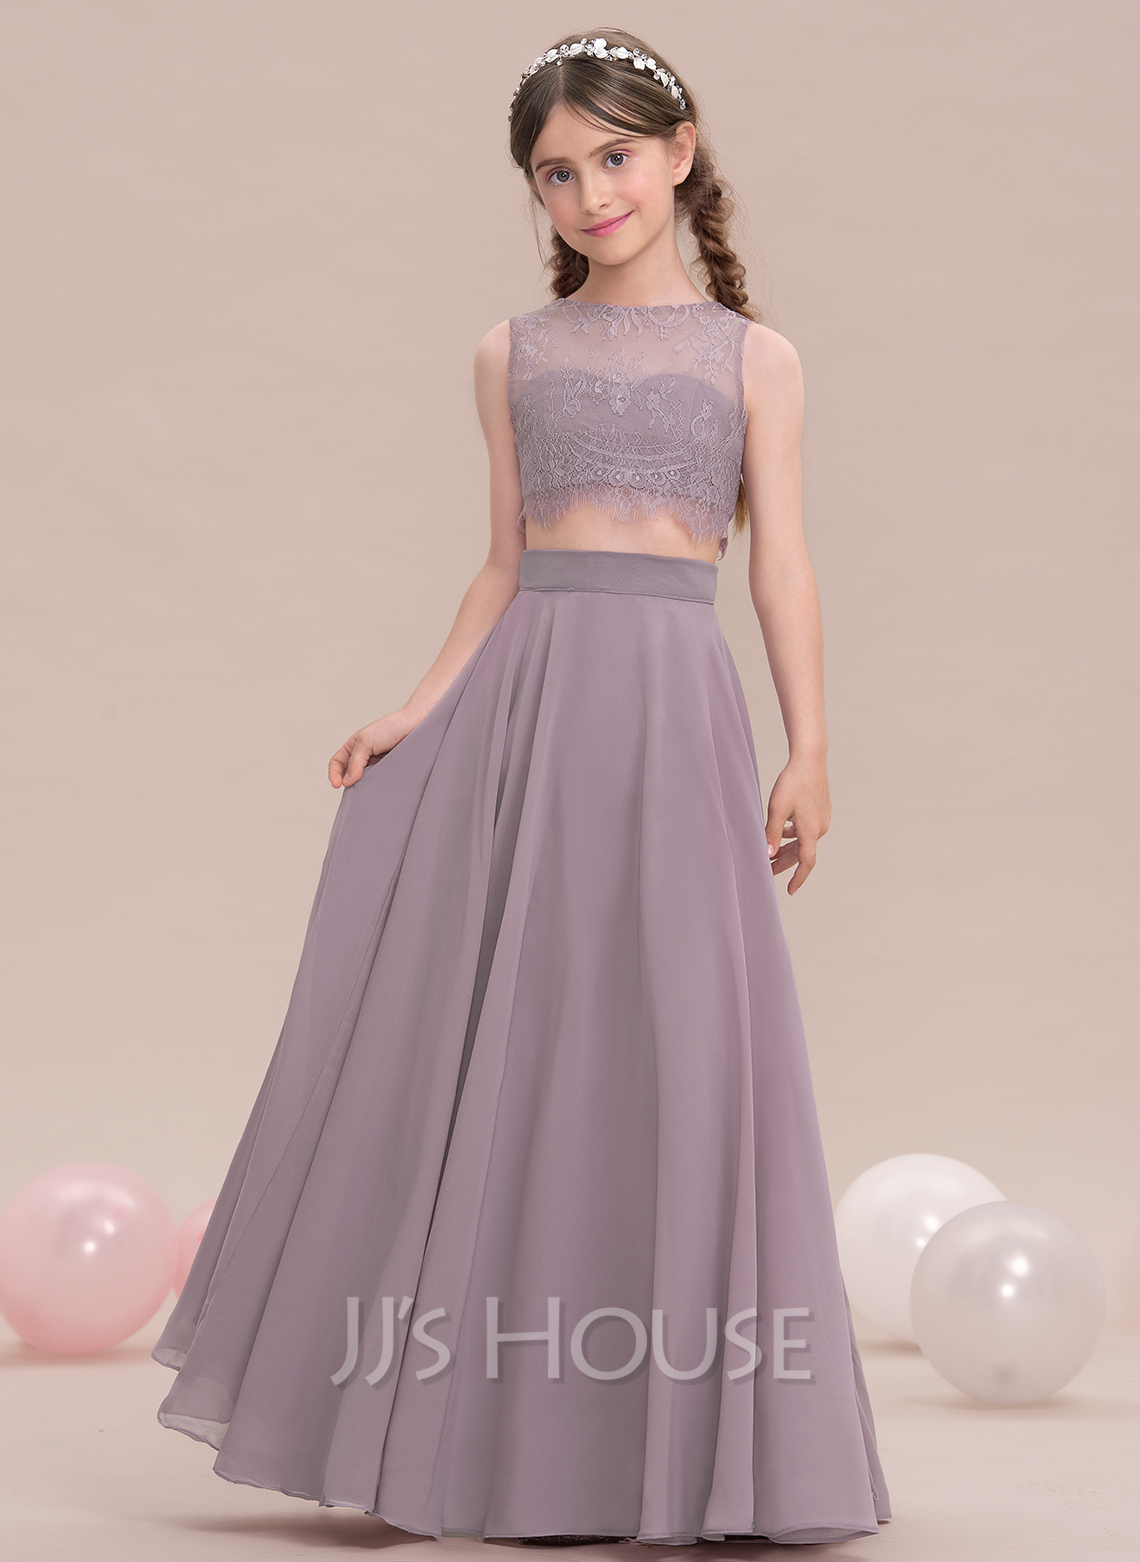 A lineprincess scoop neck floor length chiffon junior bridesmaid a lineprincess scoop neck floor length chiffon junior bridesmaid dress loading zoom ombrellifo Images